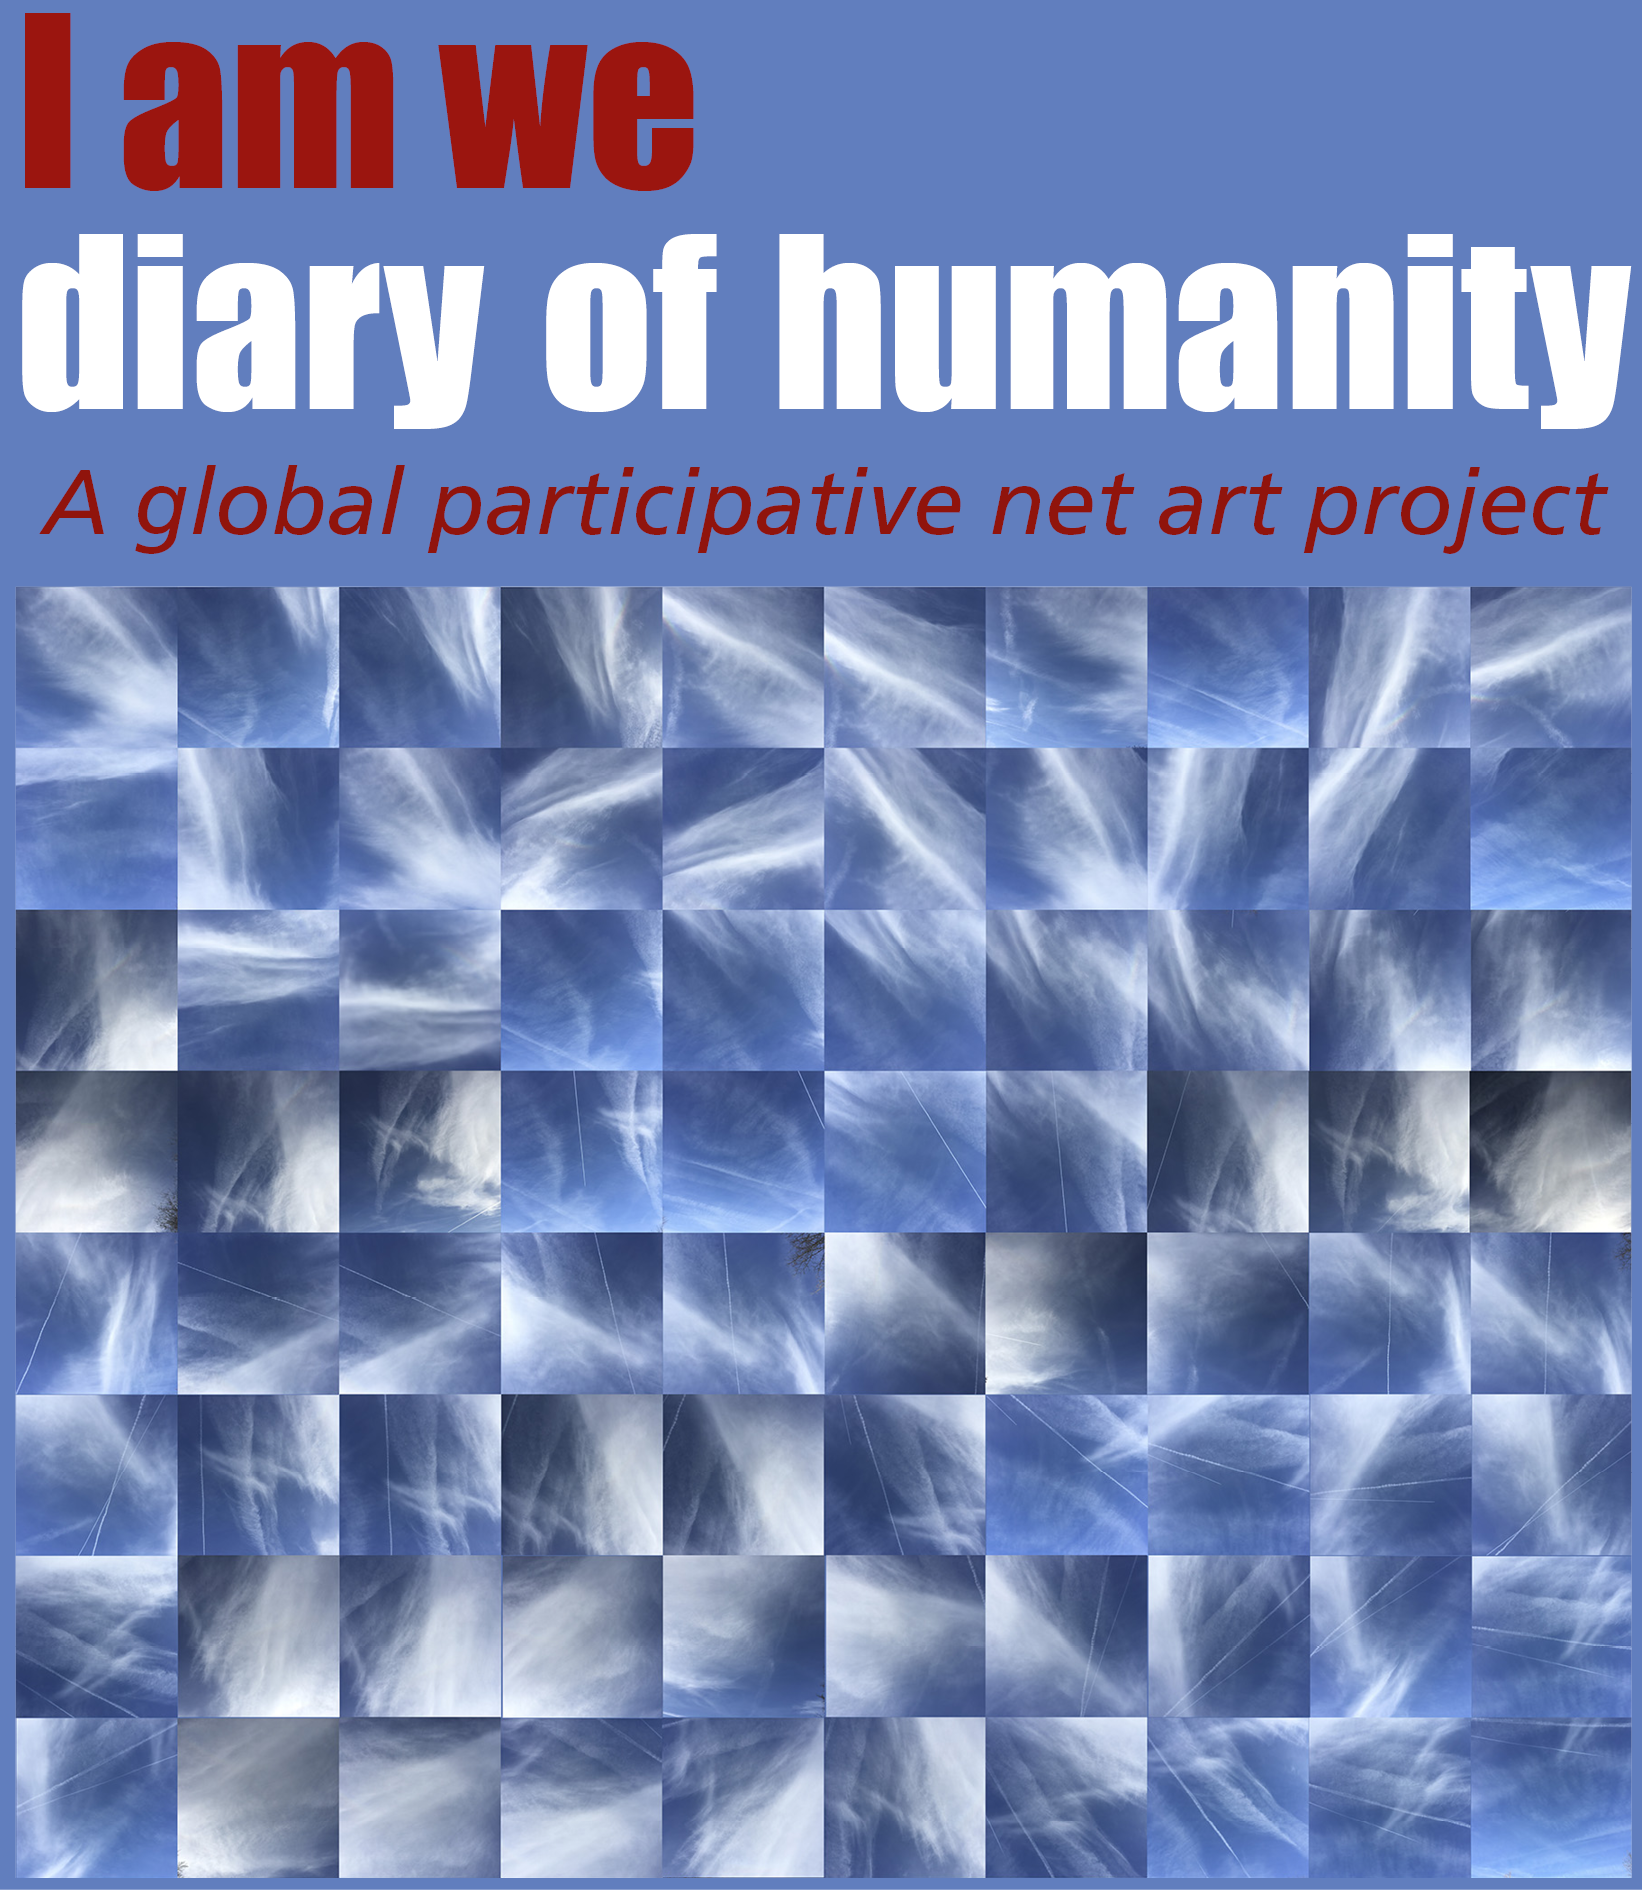 I AM WE_diary of humanity